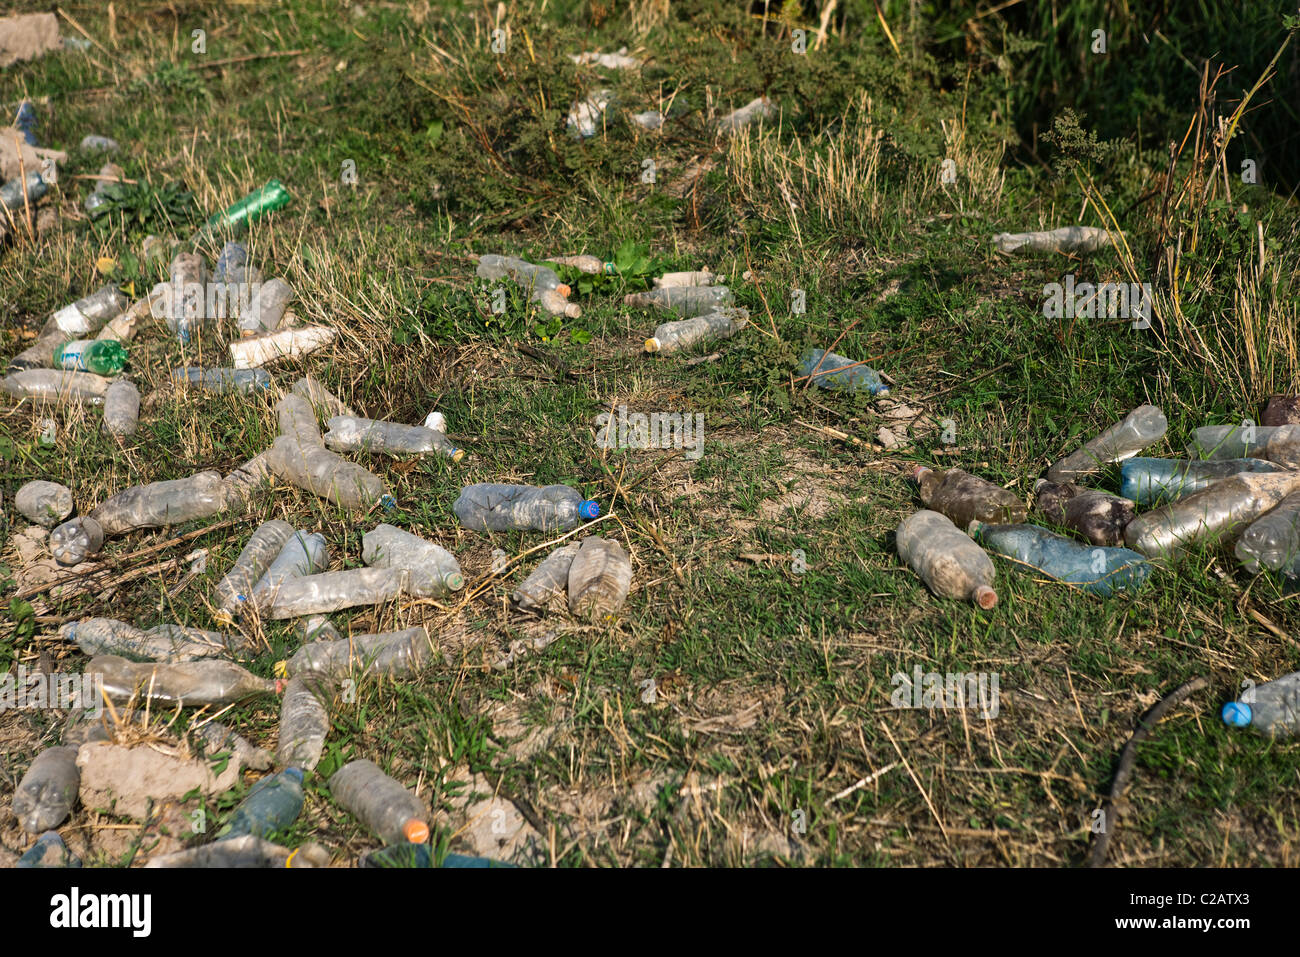 Discarded plastic bottles littering the ground Stock Photo